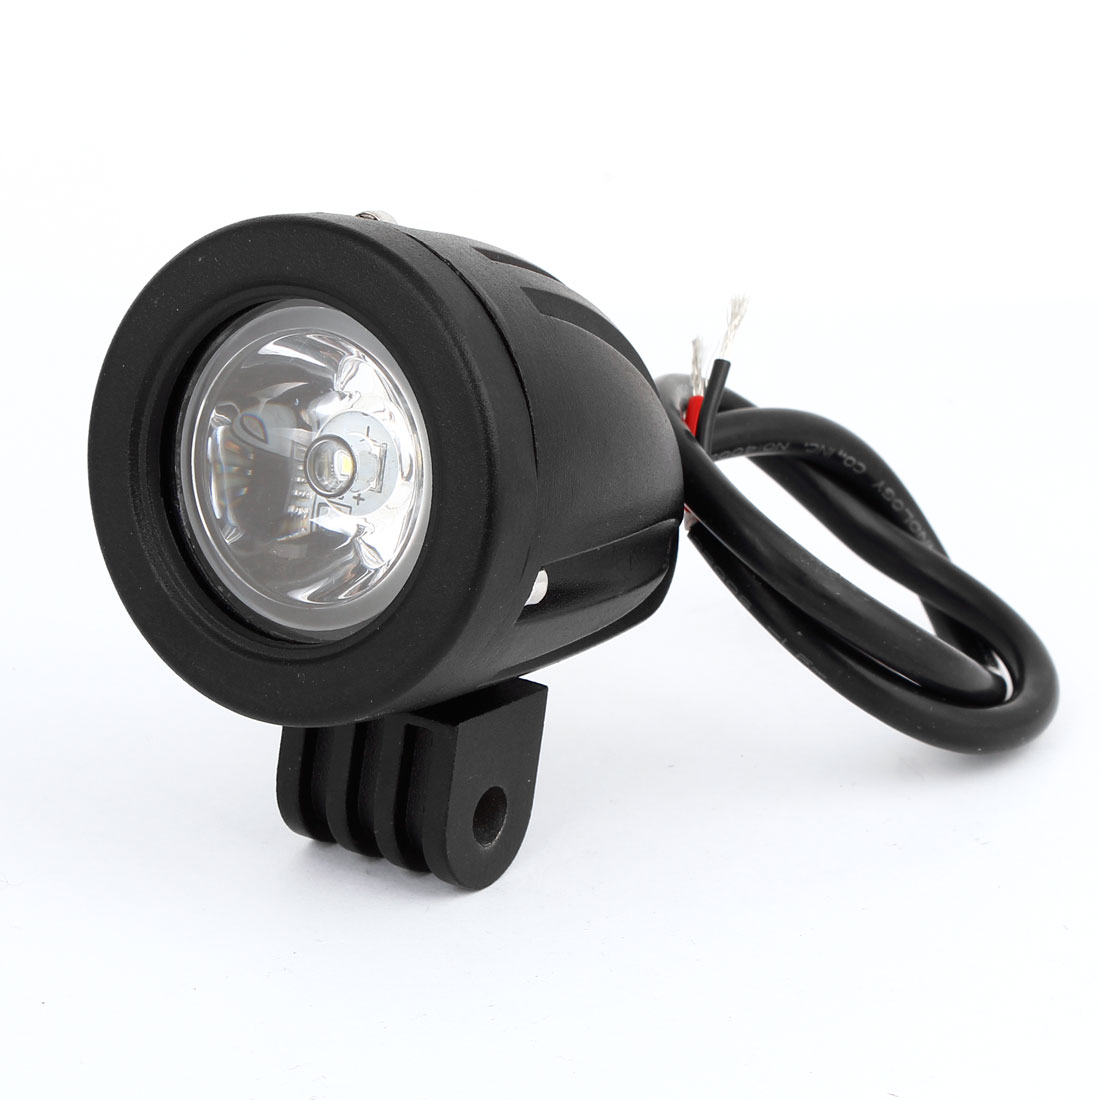 Black Round Shaped White LED Work Offroad Light Spot Beam Lamp 10W DC 12V for Car Auto